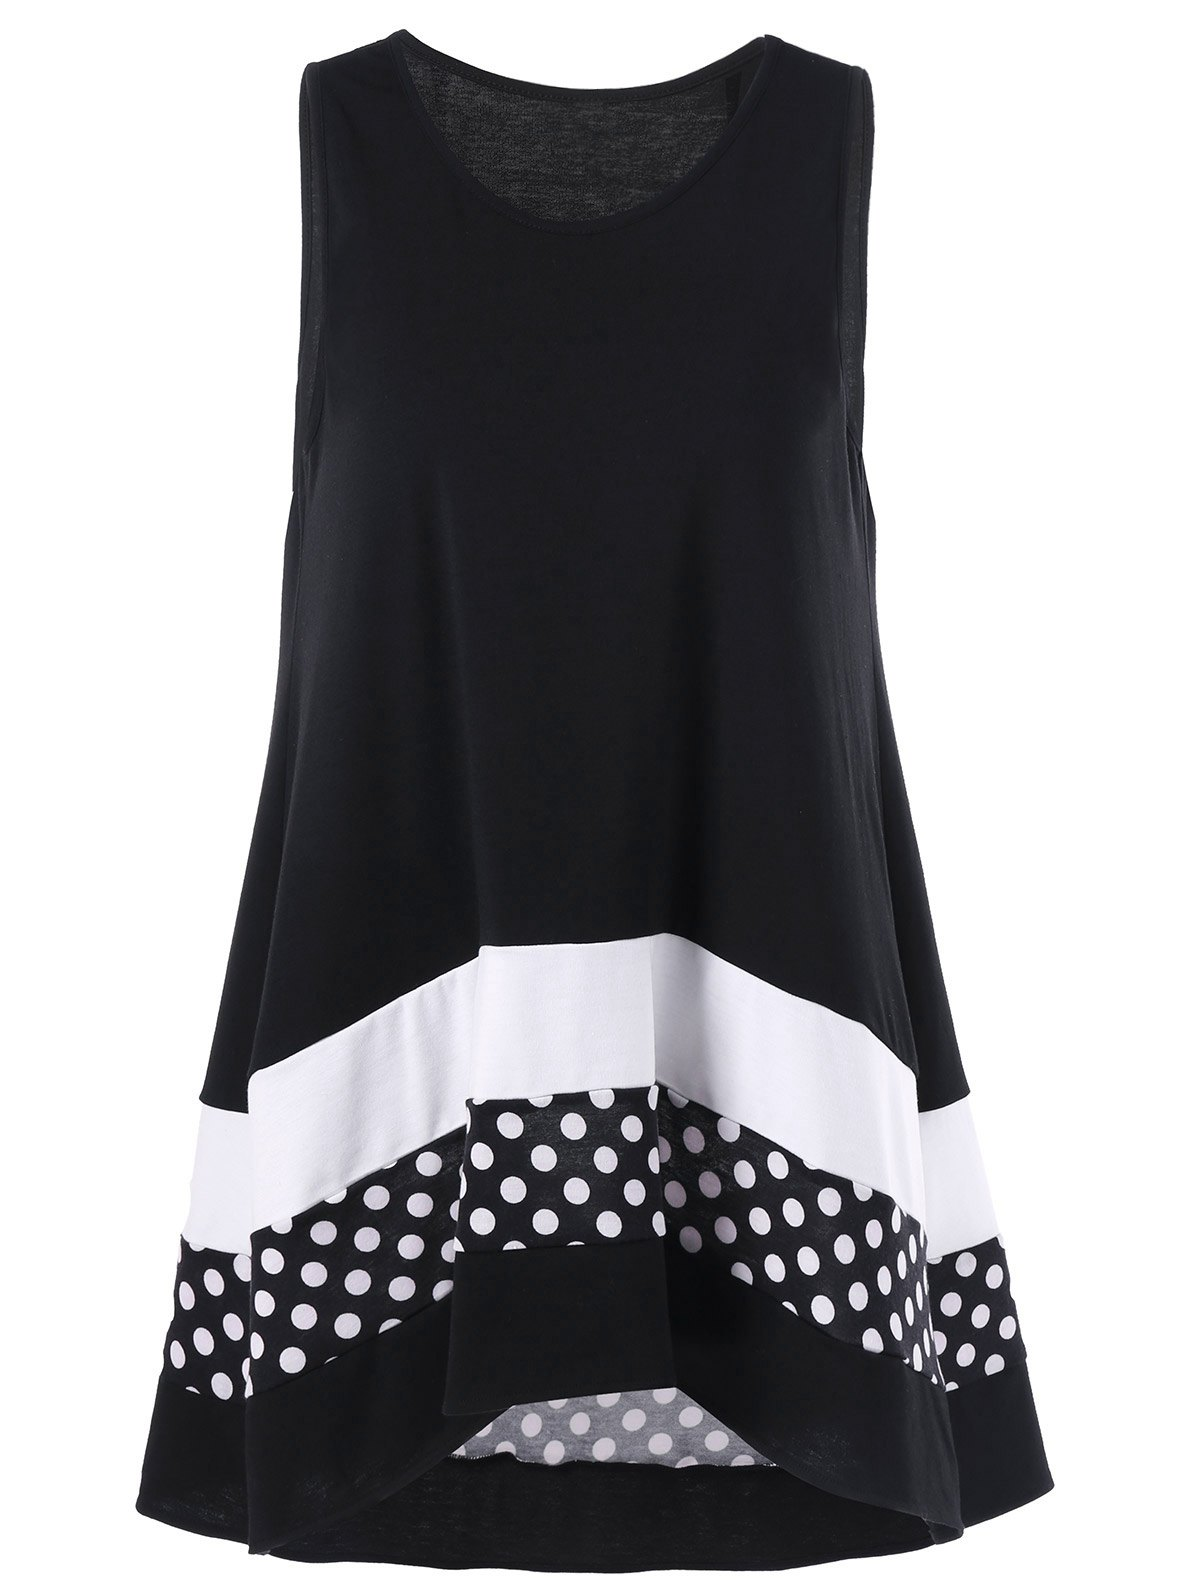 Plus Size Polka Dot Sleeveless Tunic TopWOMEN<br><br>Size: XL; Color: COLORMIX; Material: Polyester,Spandex; Shirt Length: Long; Sleeve Length: Sleeveless; Collar: Scoop Neck; Style: Casual; Season: Summer; Pattern Type: Polka Dot; Weight: 0.3200kg; Package Contents: 1 x Top;